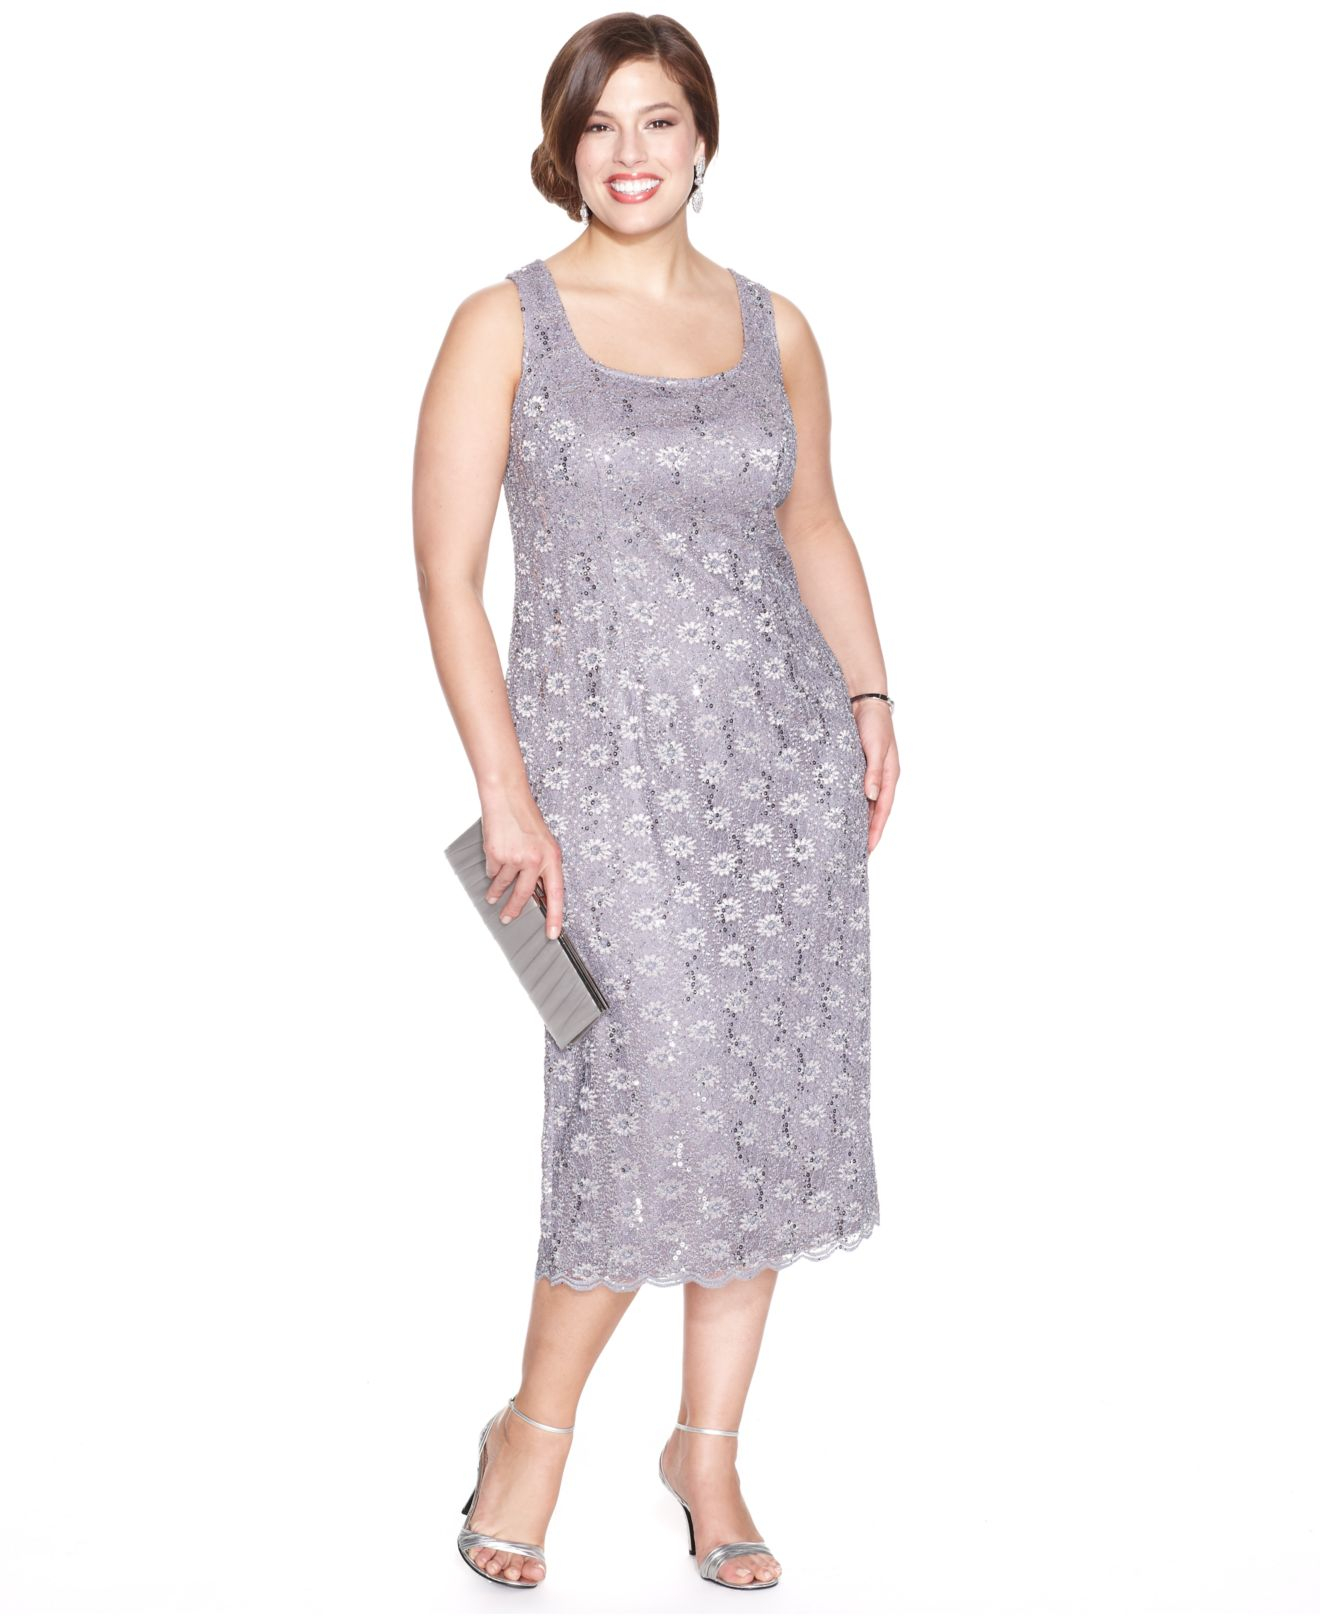 Lyst - Alex evenings Plus Size Sequin Lace Dress And Jacket in Gray